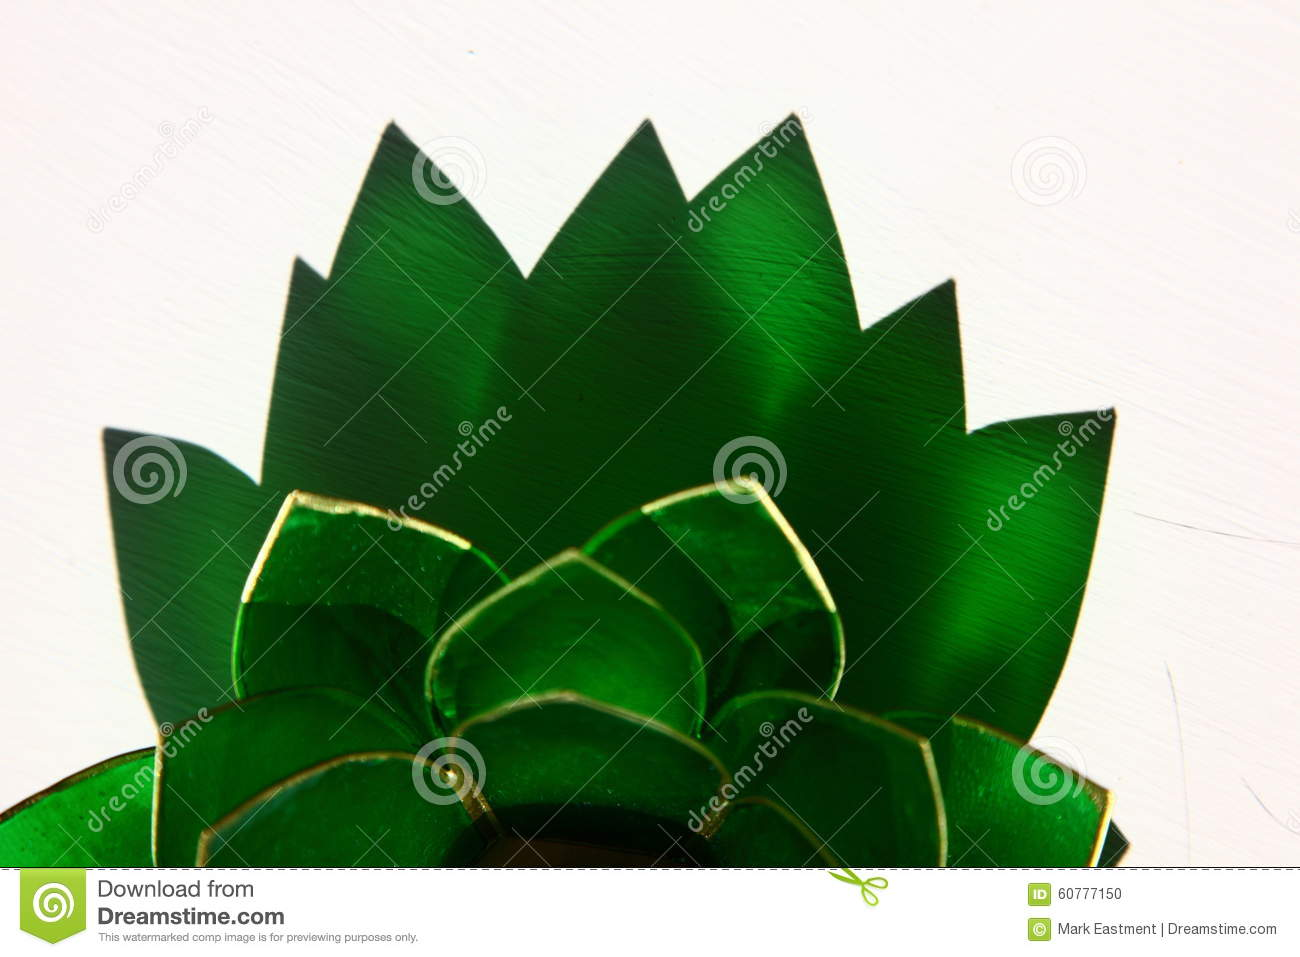 Lotus Flower Candle Holder Stock Photo Image Of Object 60777150